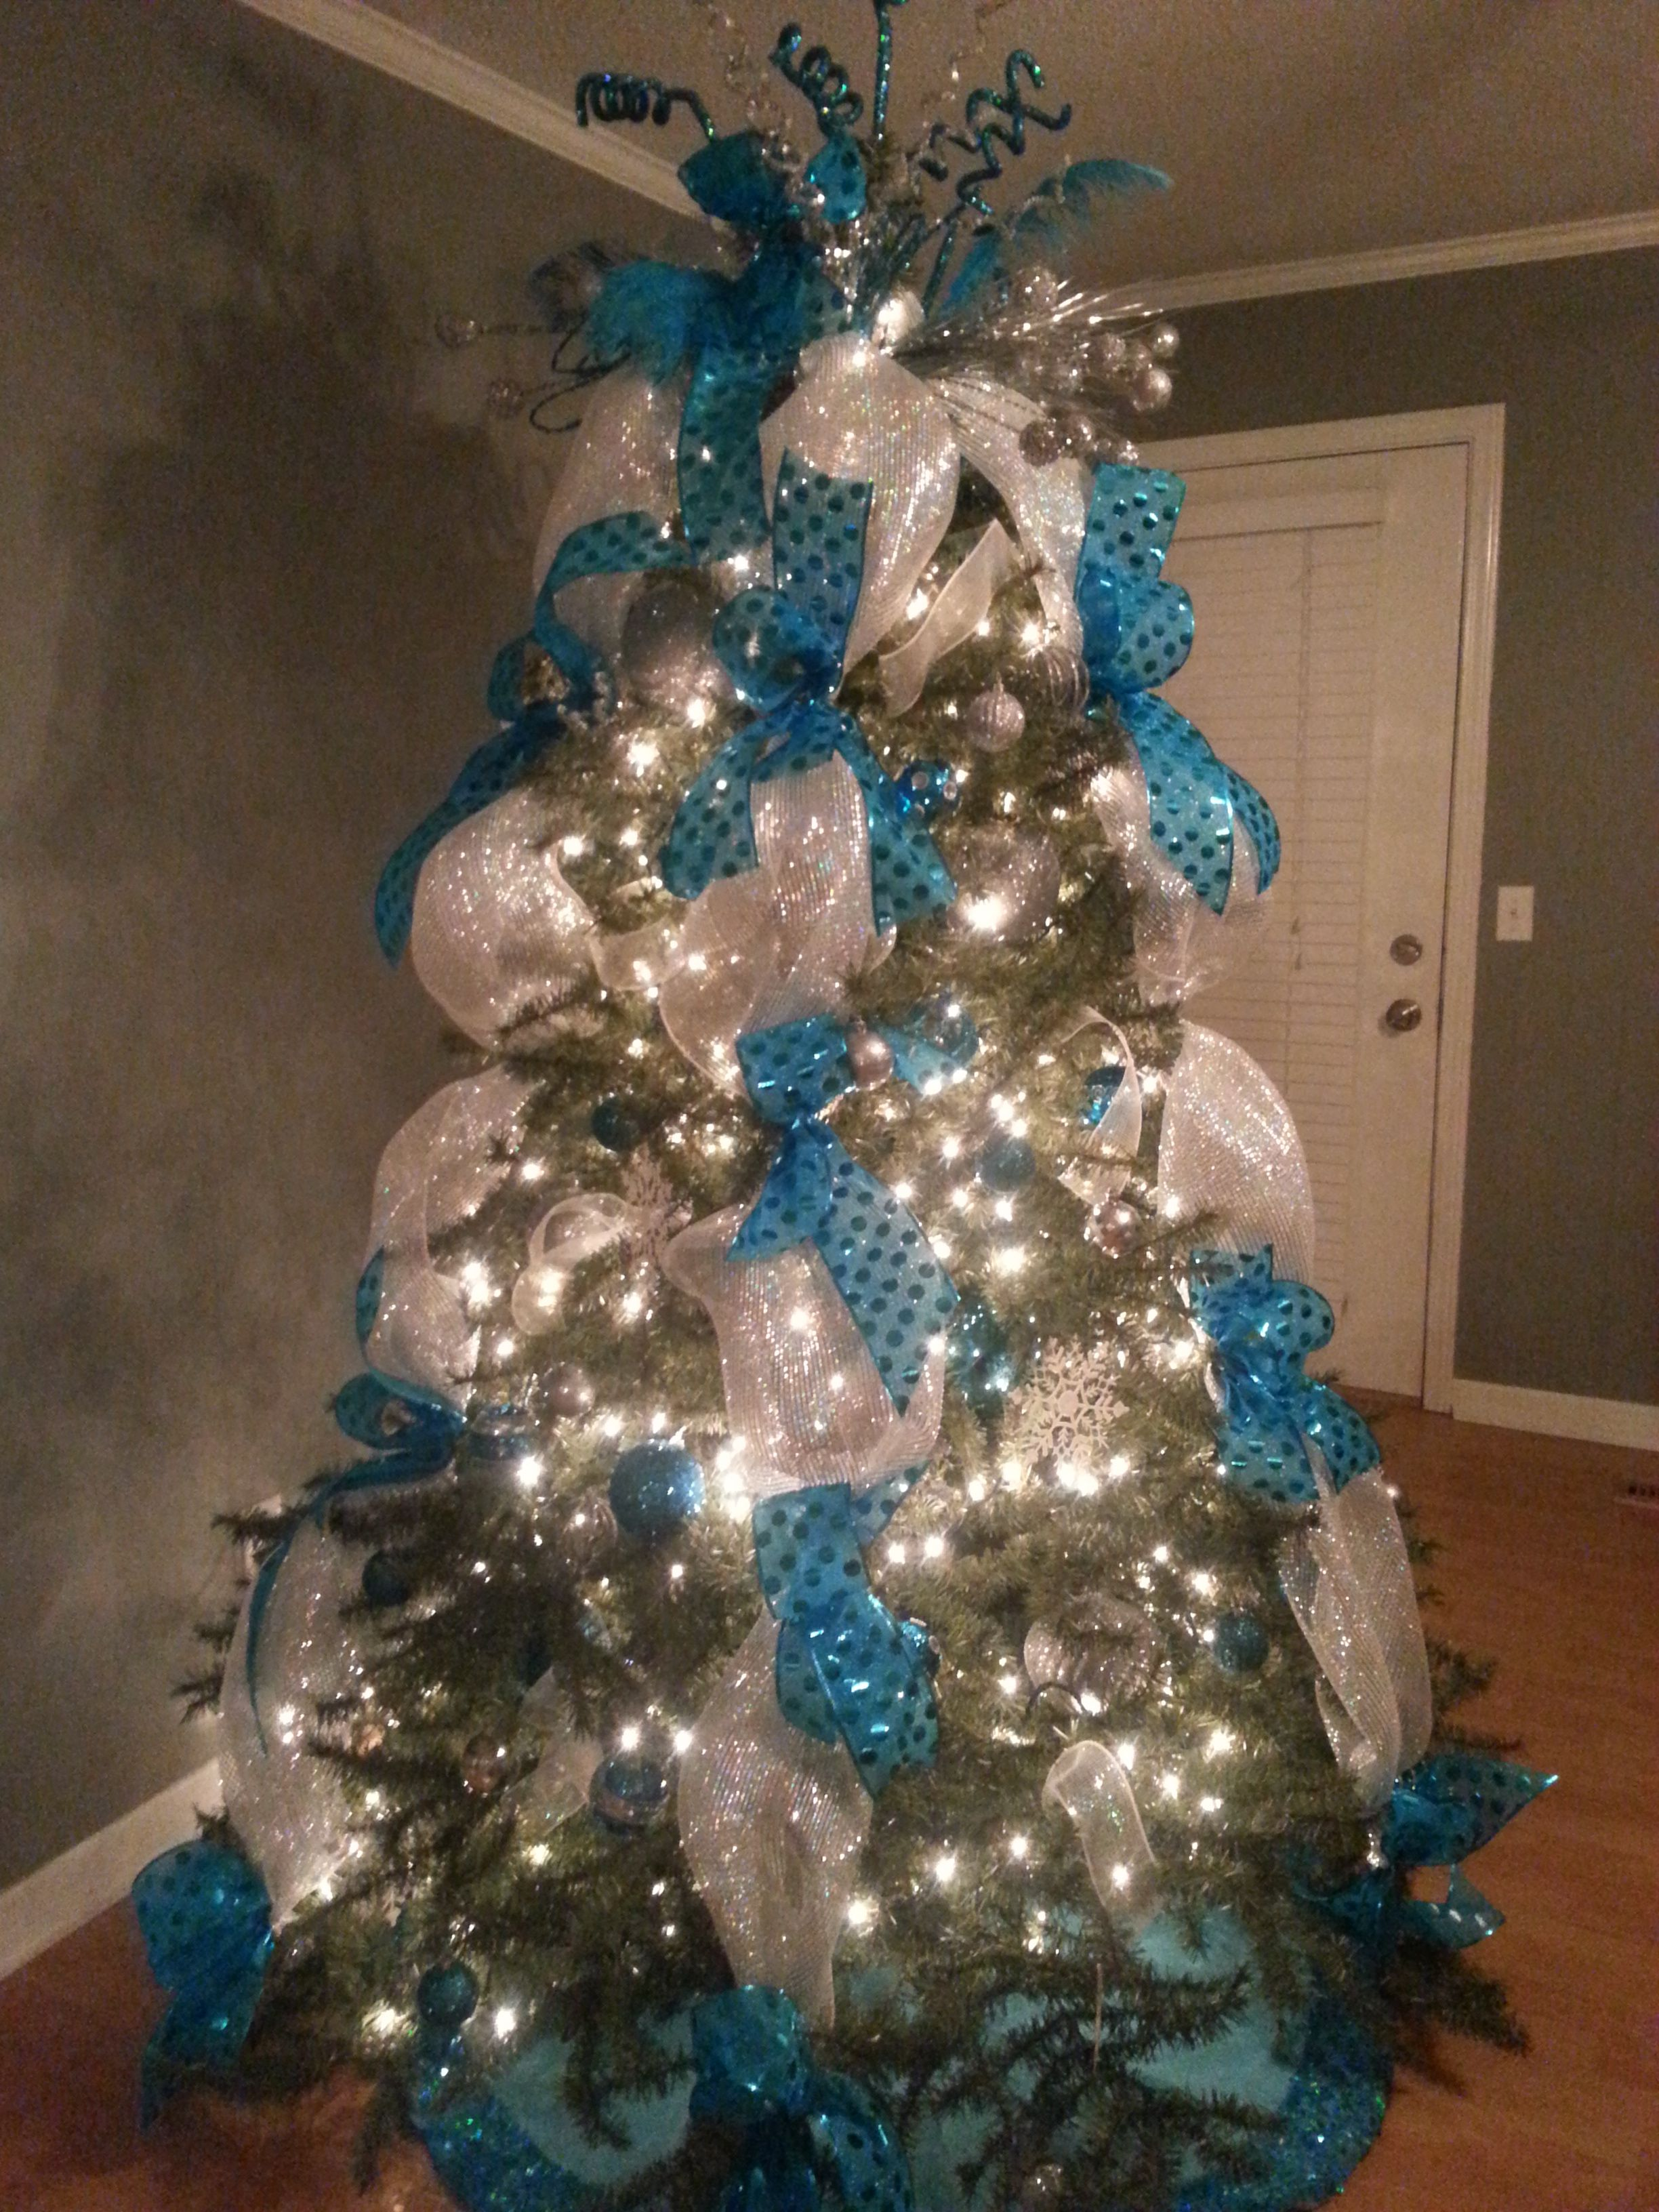 Christmas Tree With Teal Silver Deco Mesh Love My Tree Christmas Tree Decorations Christmas Tree Turquoise Christmas